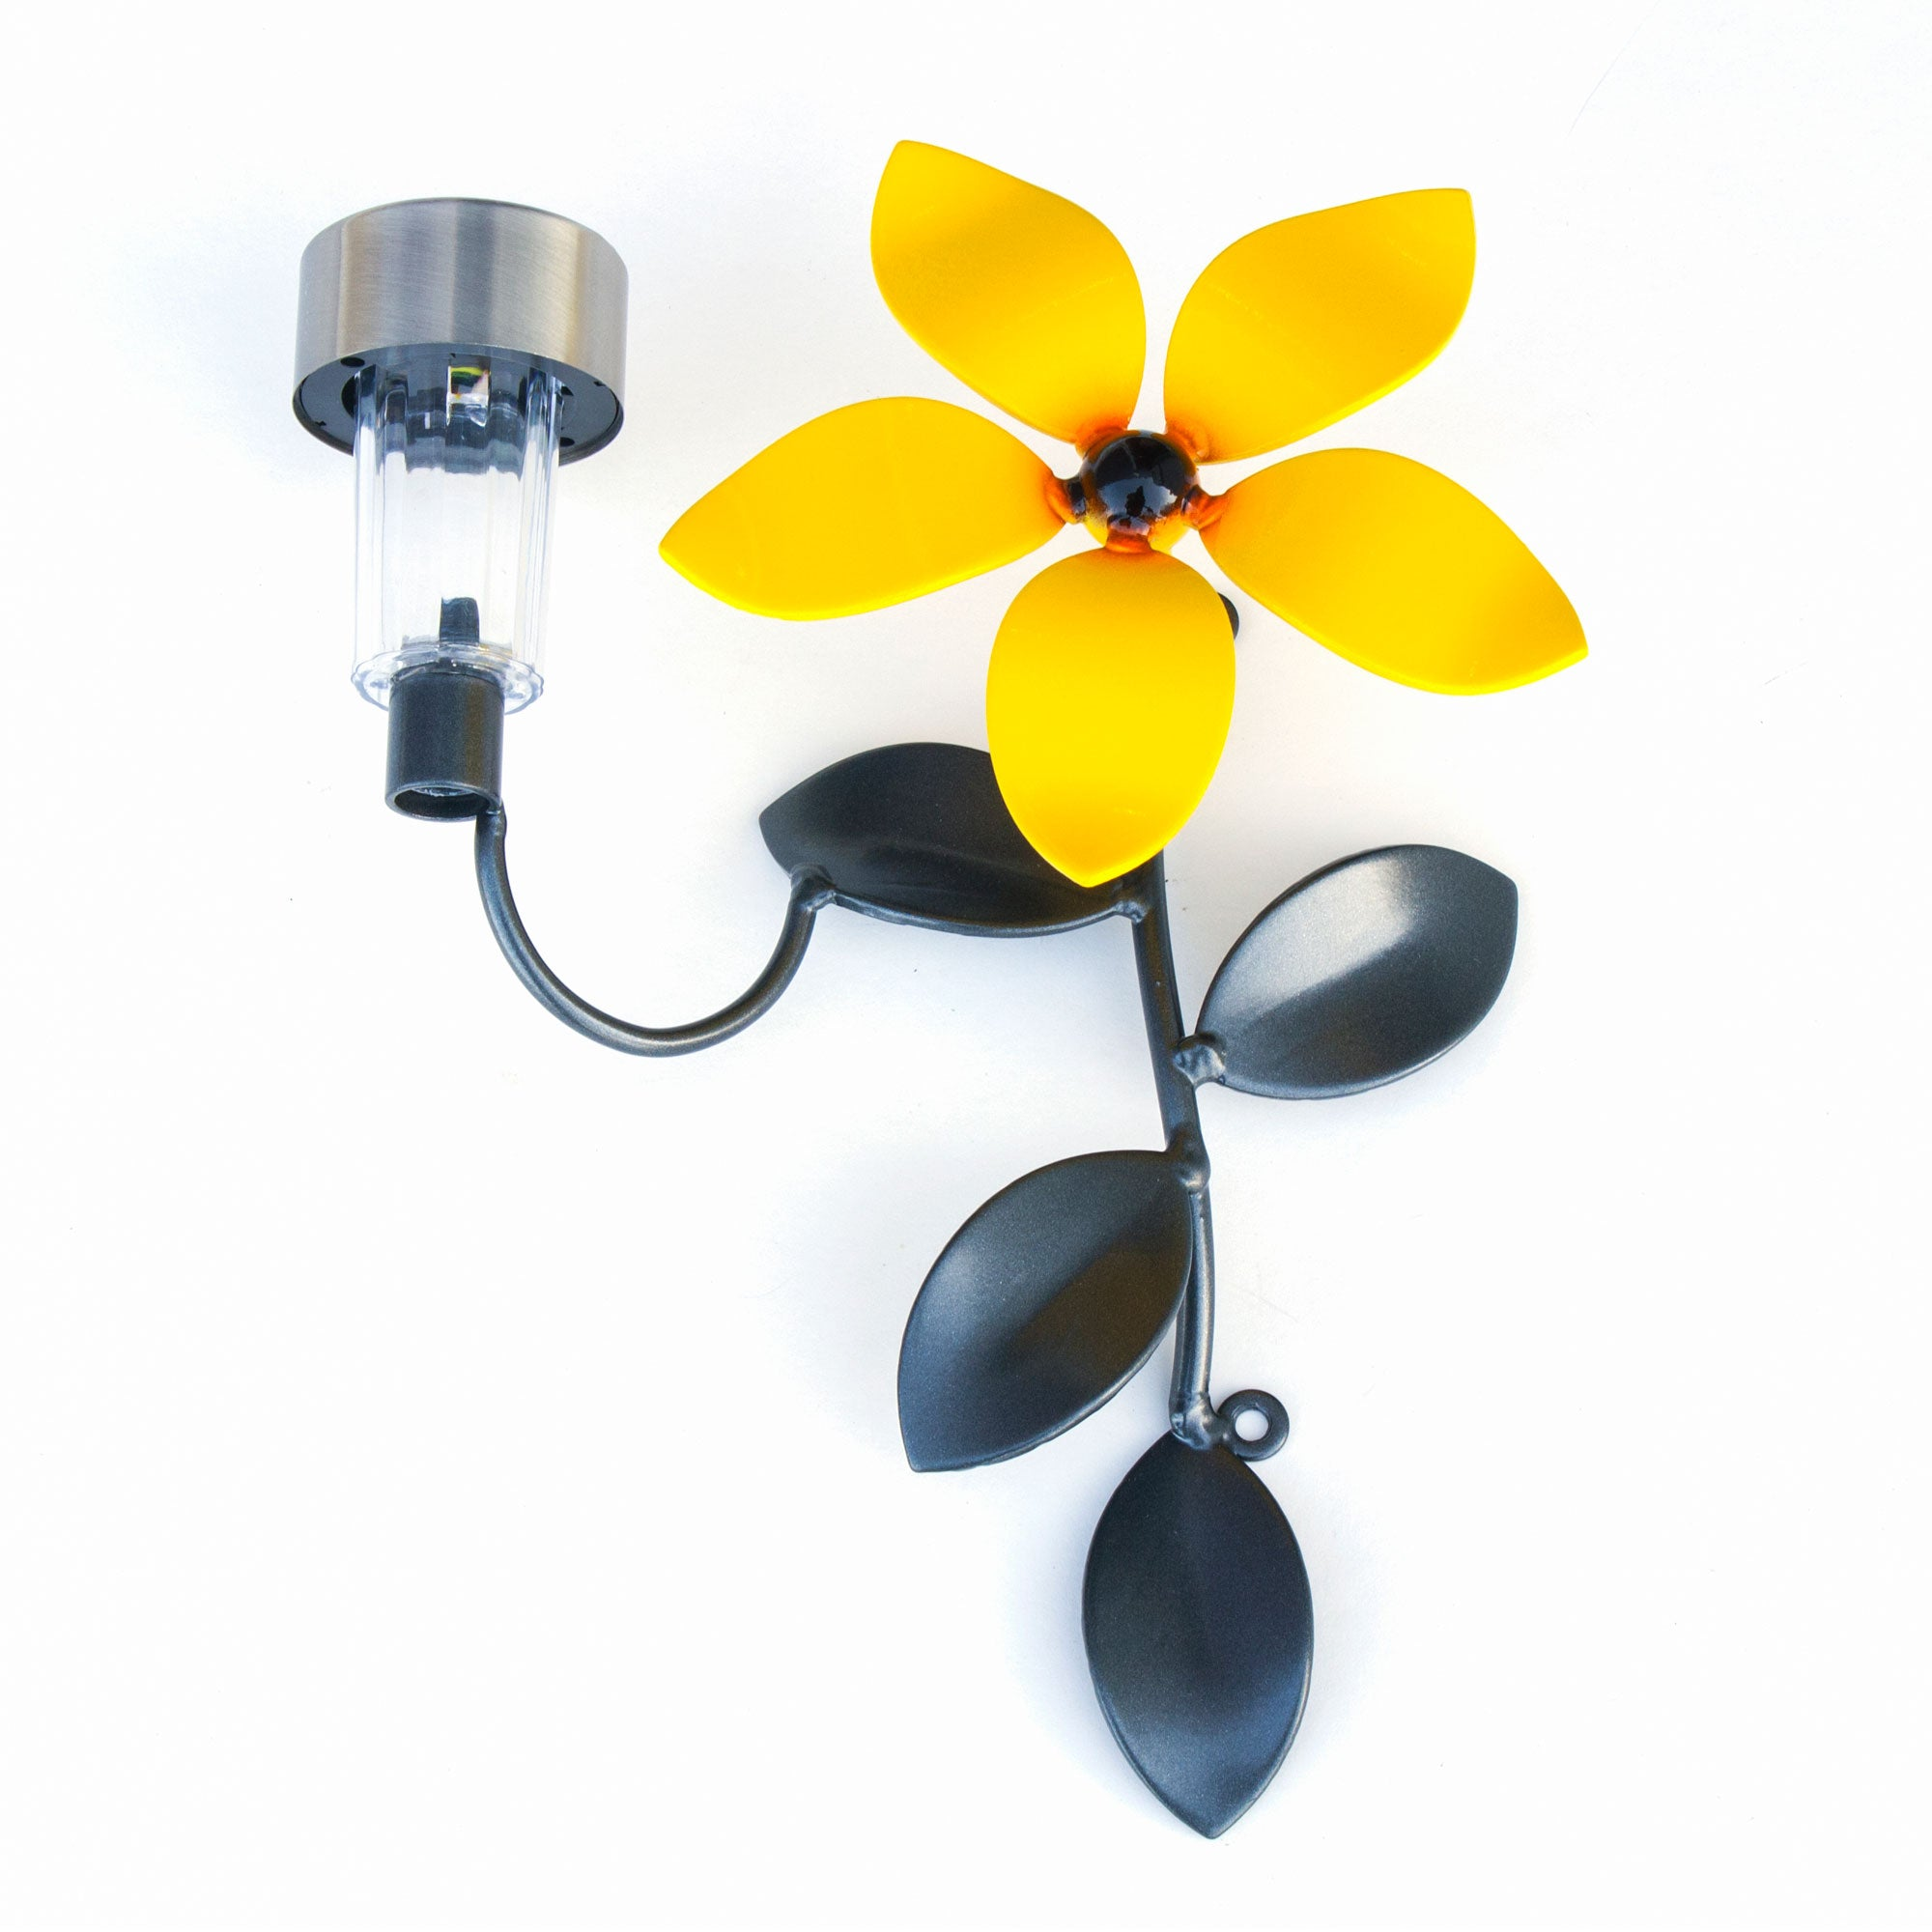 Wall-mounted Metal Art Flowers Vines With LED Solar Light Garden Decor